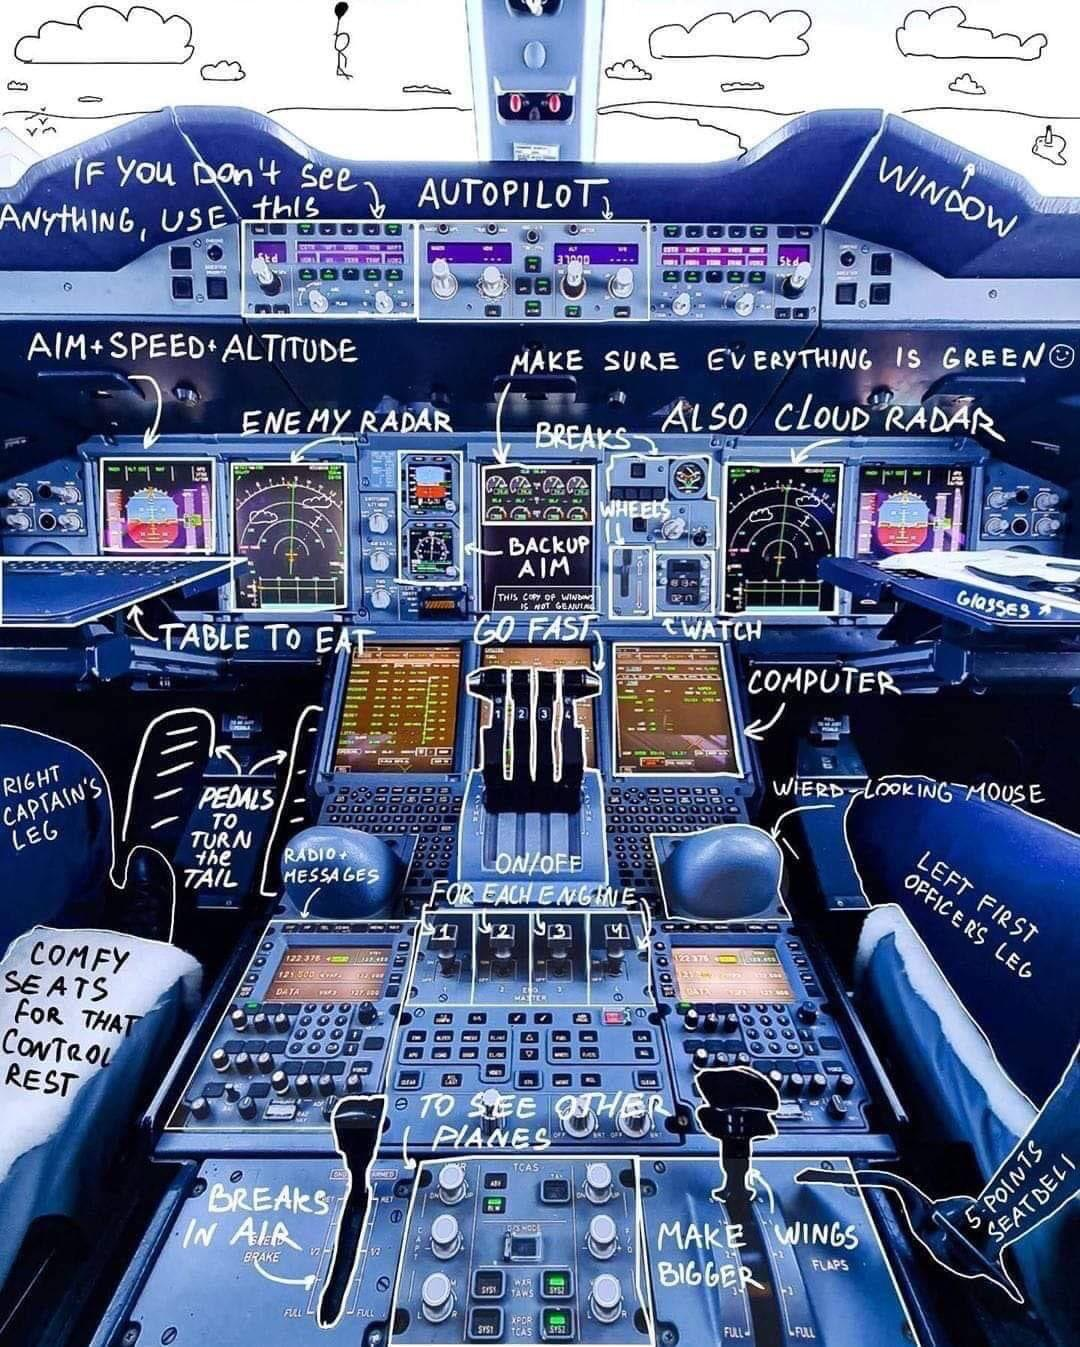 Guide to the cockpit